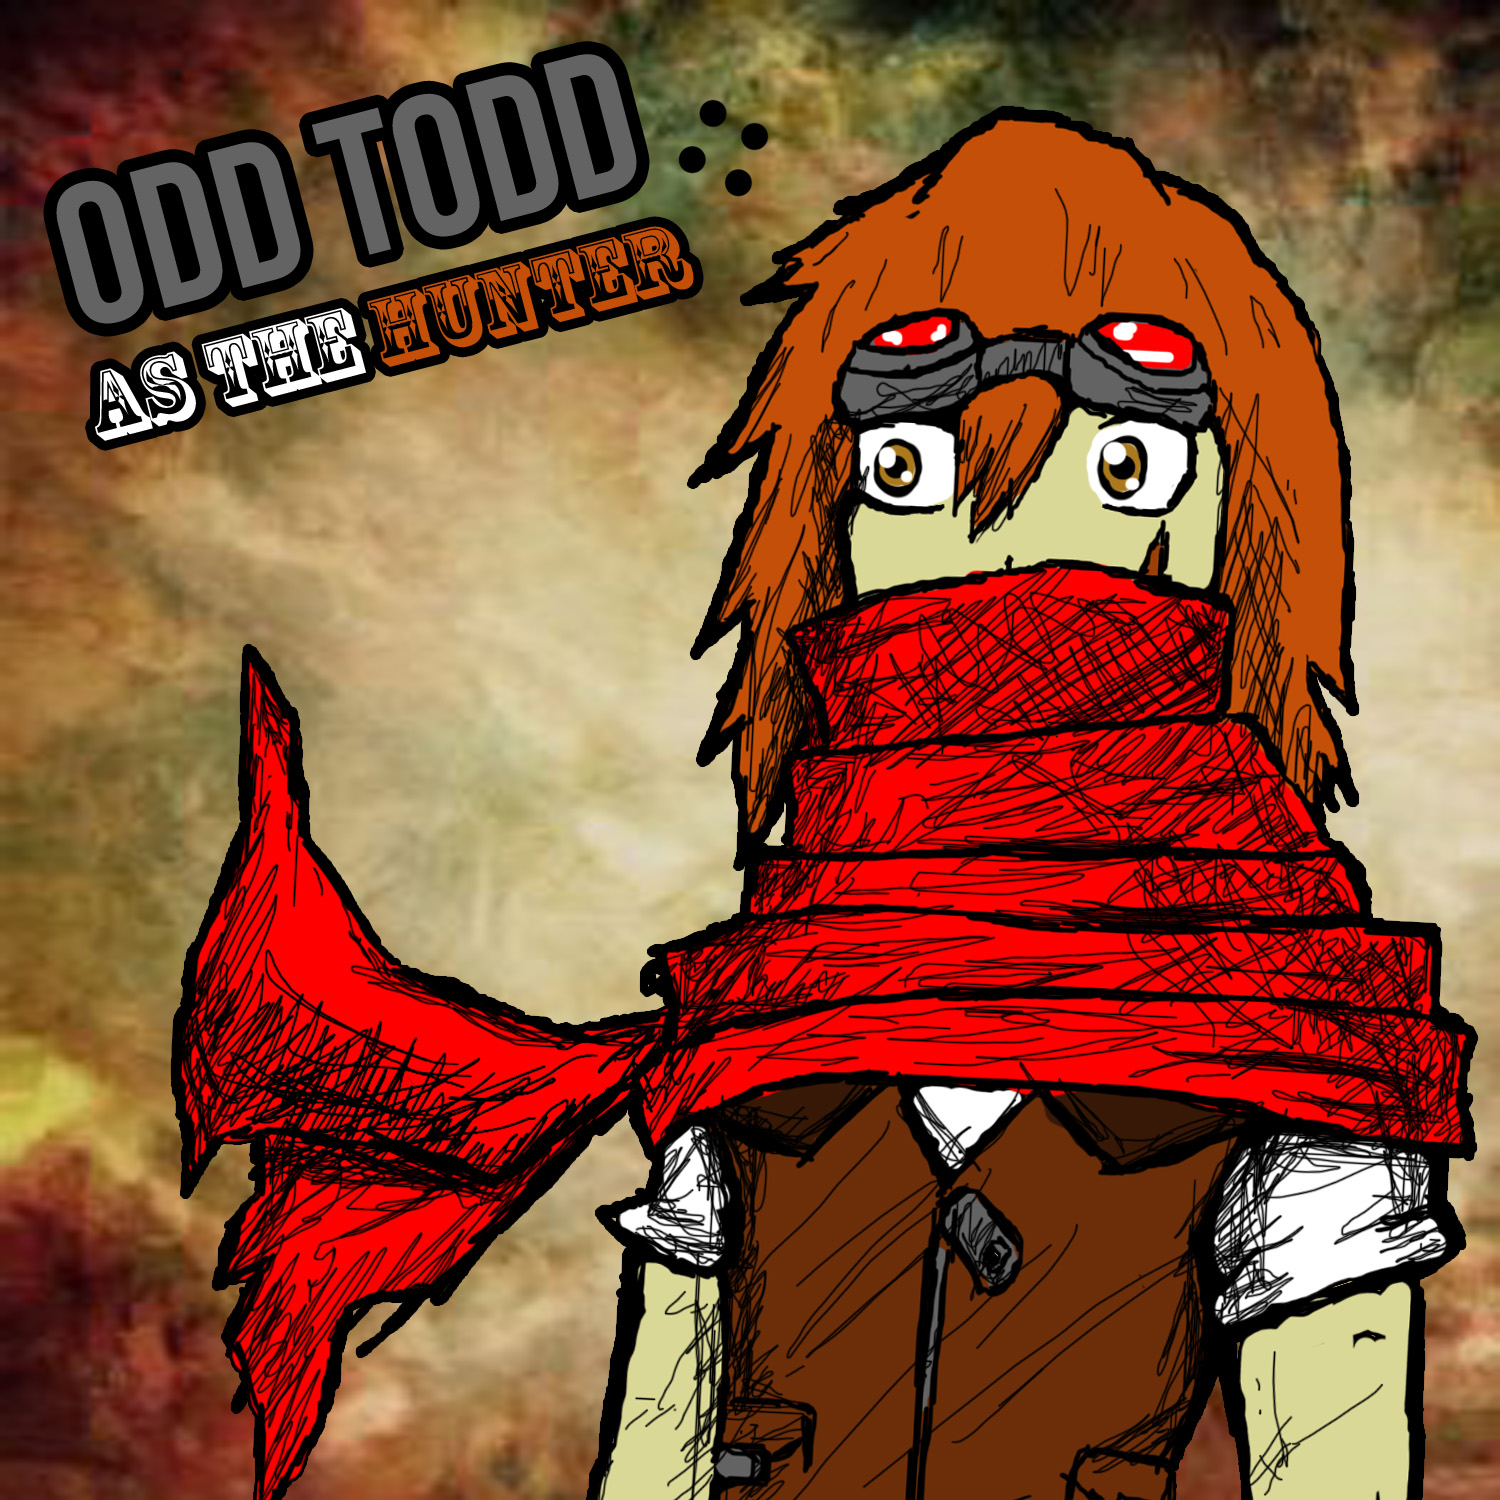 Odd Todd designed by Trey Falco and illustrated by Vincent Baker